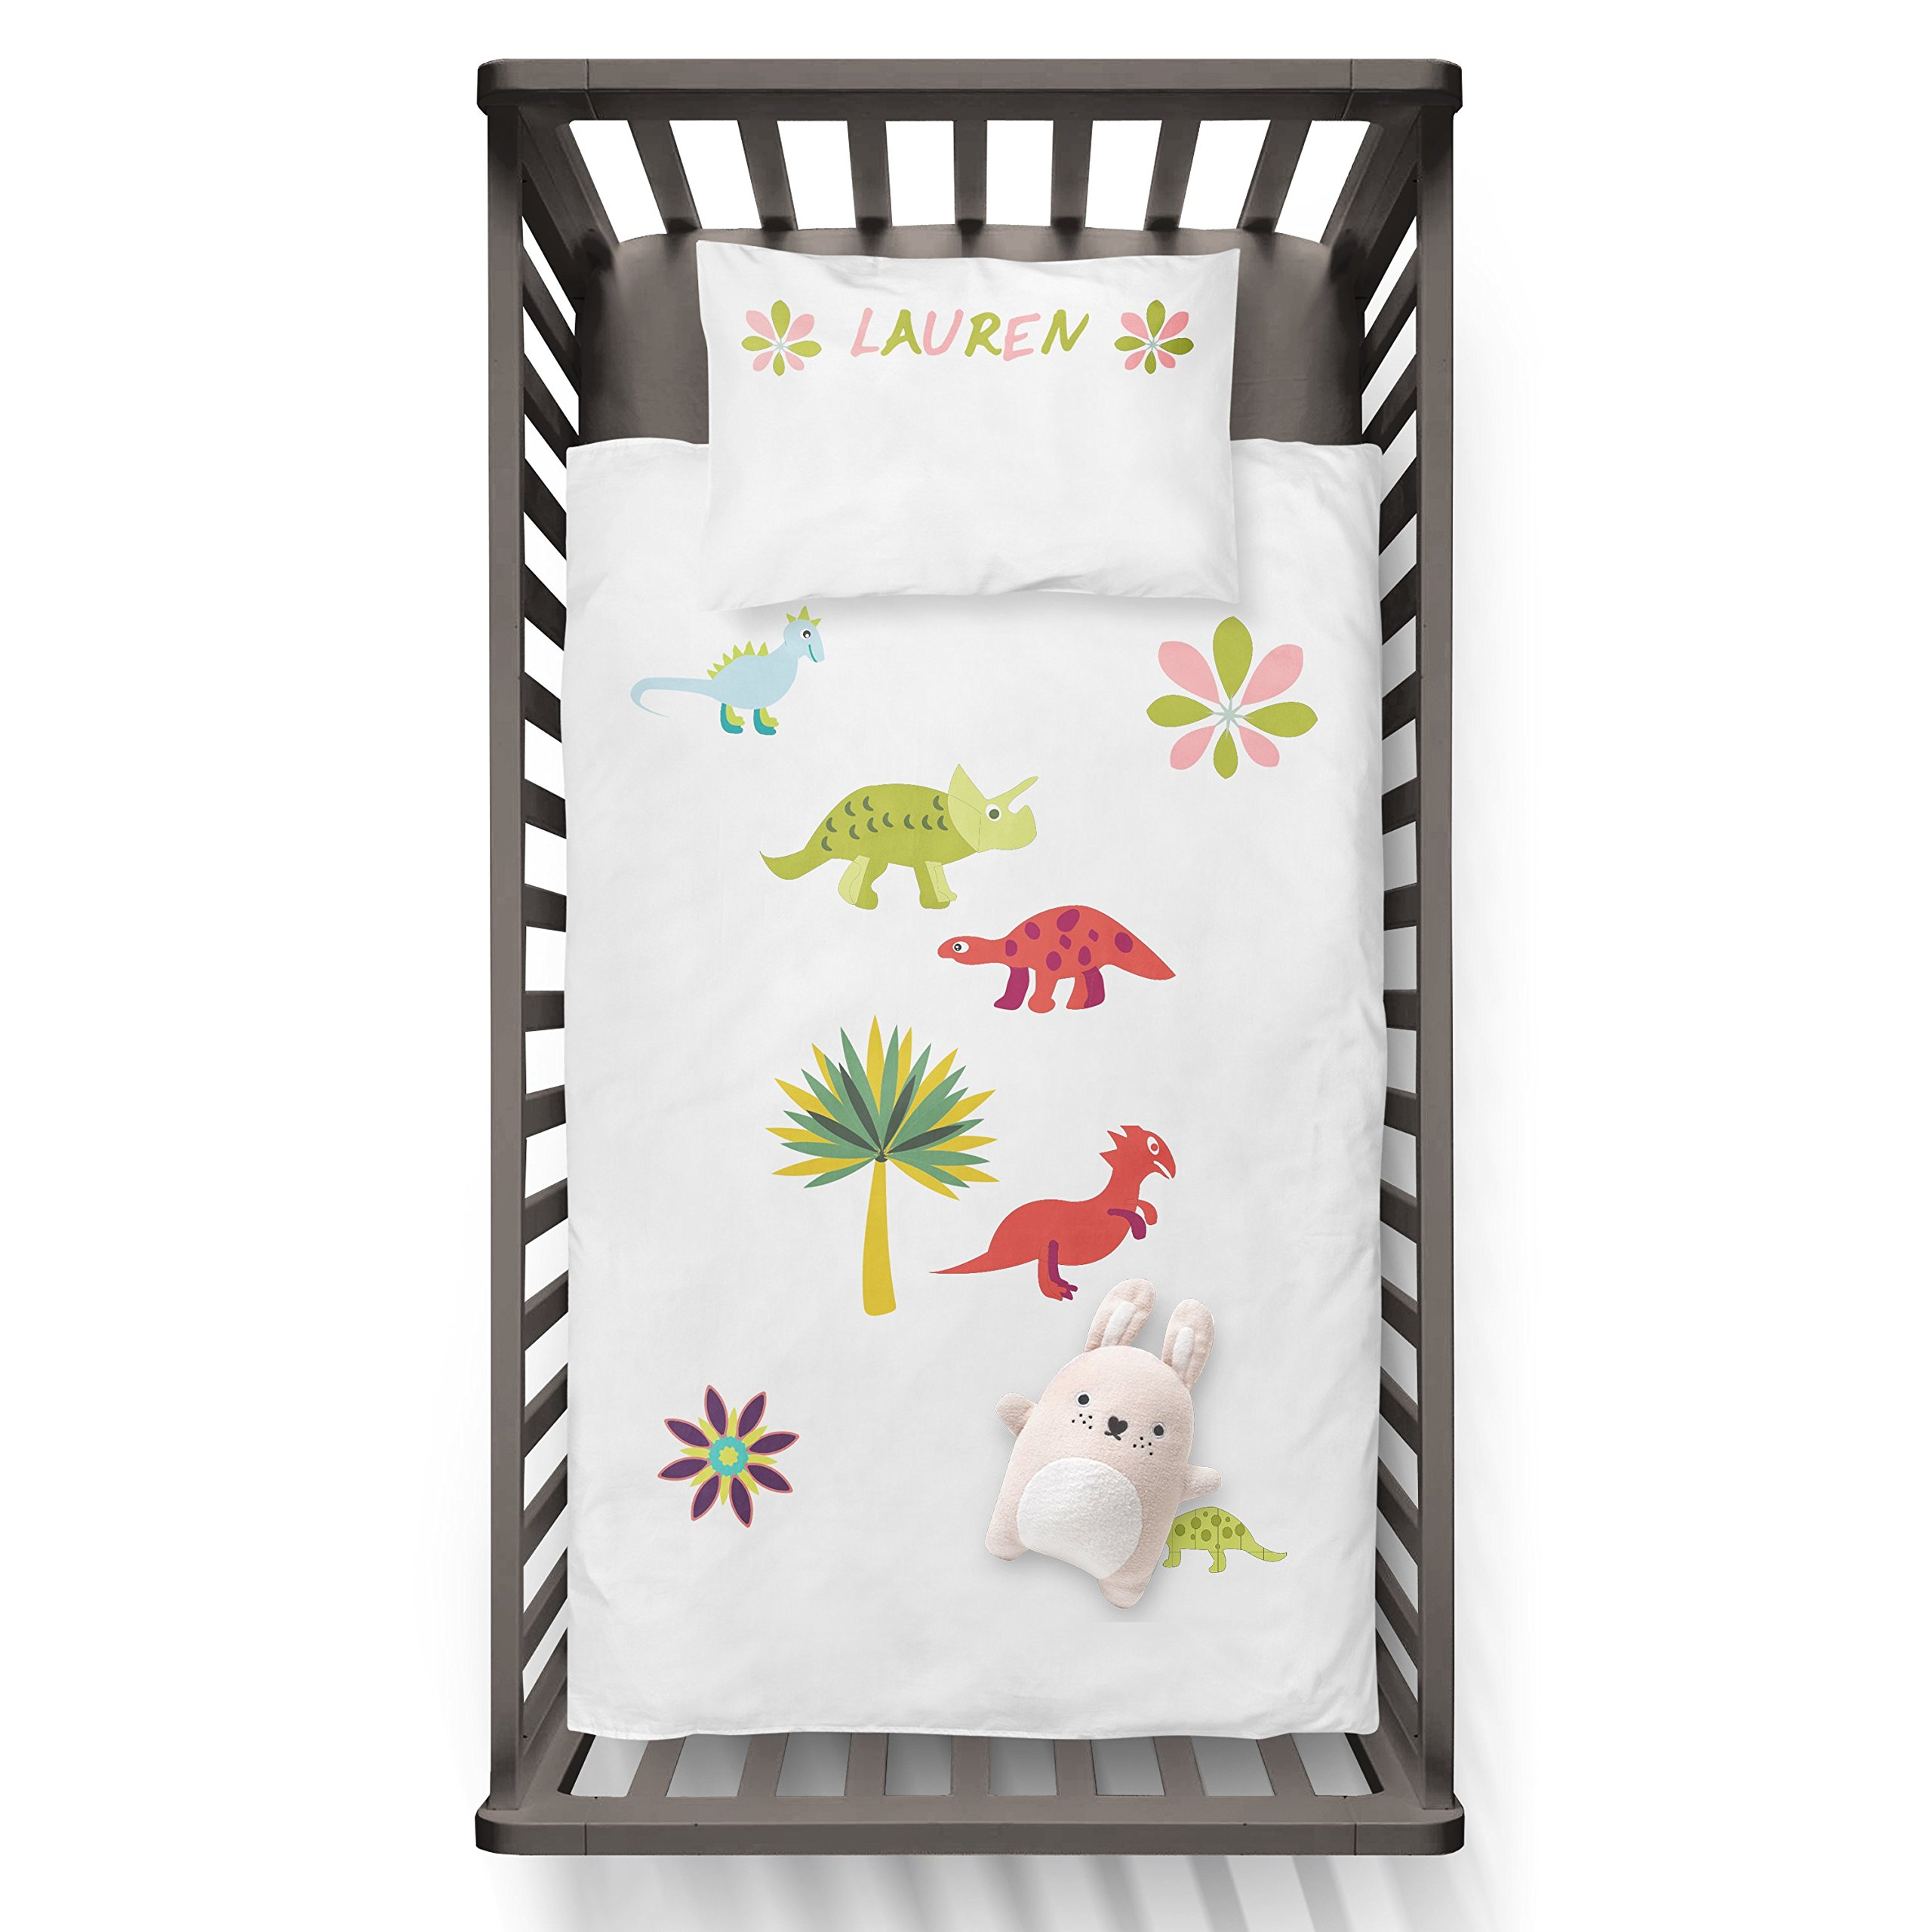 Personalised Baby Dino Duvet And Name On The Pillow Funny Humor Hip Baby Duvet /Pillow set,Toddler Duvet,Oeko-Tex,Personalized duvet and pillow,Oraganic,gift